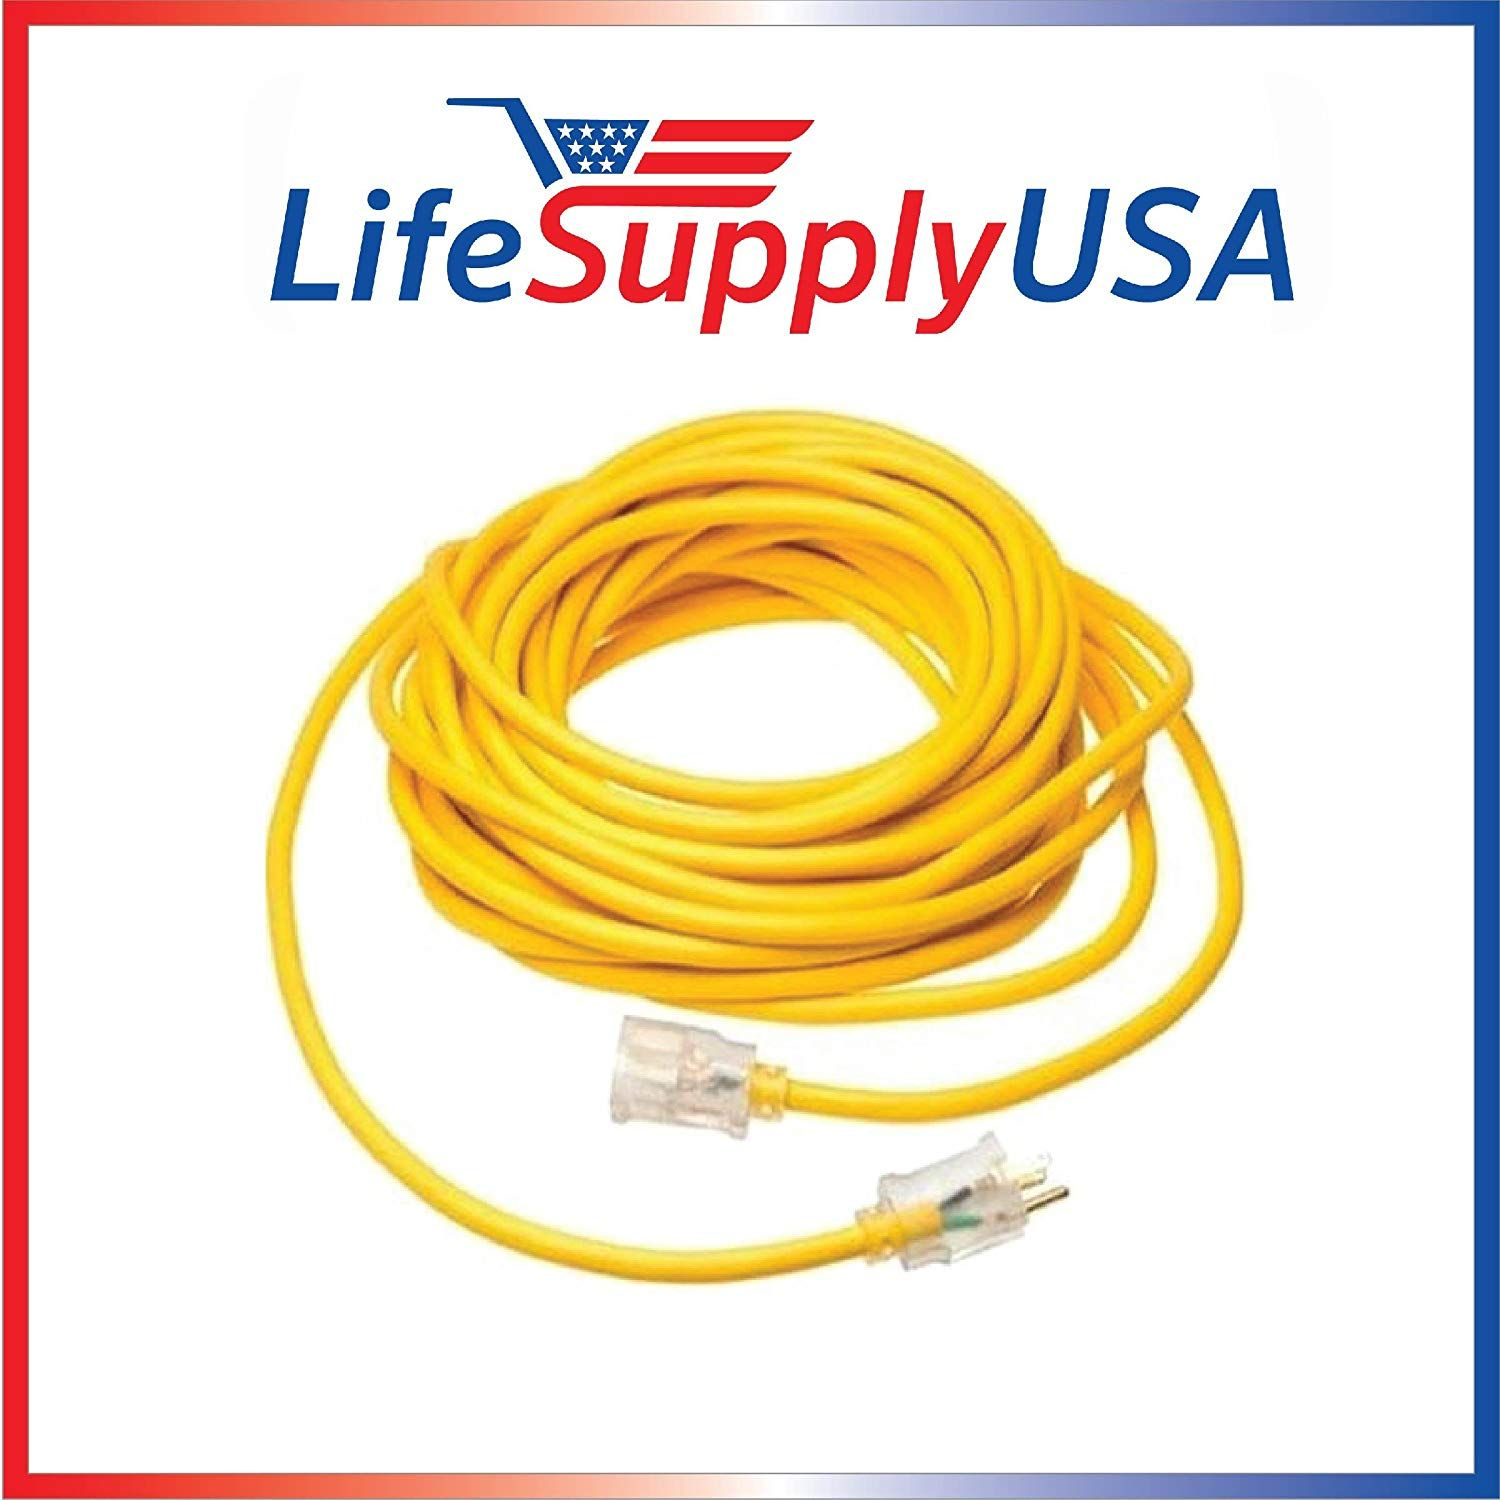 75 feet 10//3 75ft SJTW Lighted End Extension Cord 15 Amp 300 Volt 1875 Watt